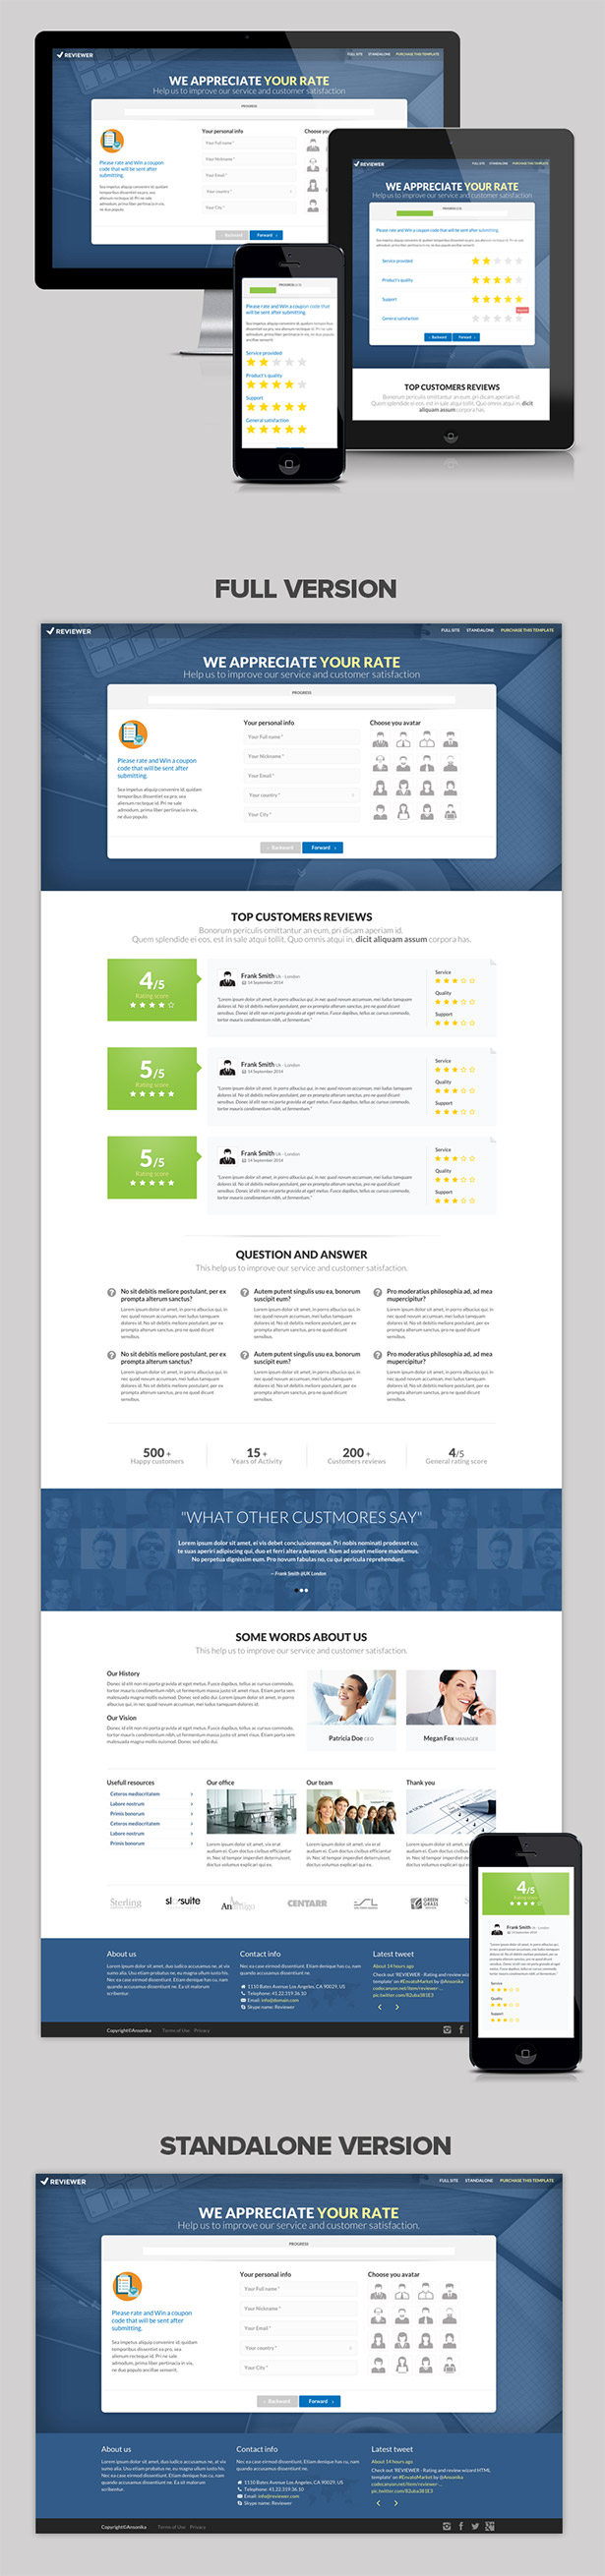 REVIEWER - Rating and Review Wizard HTML Template - 7